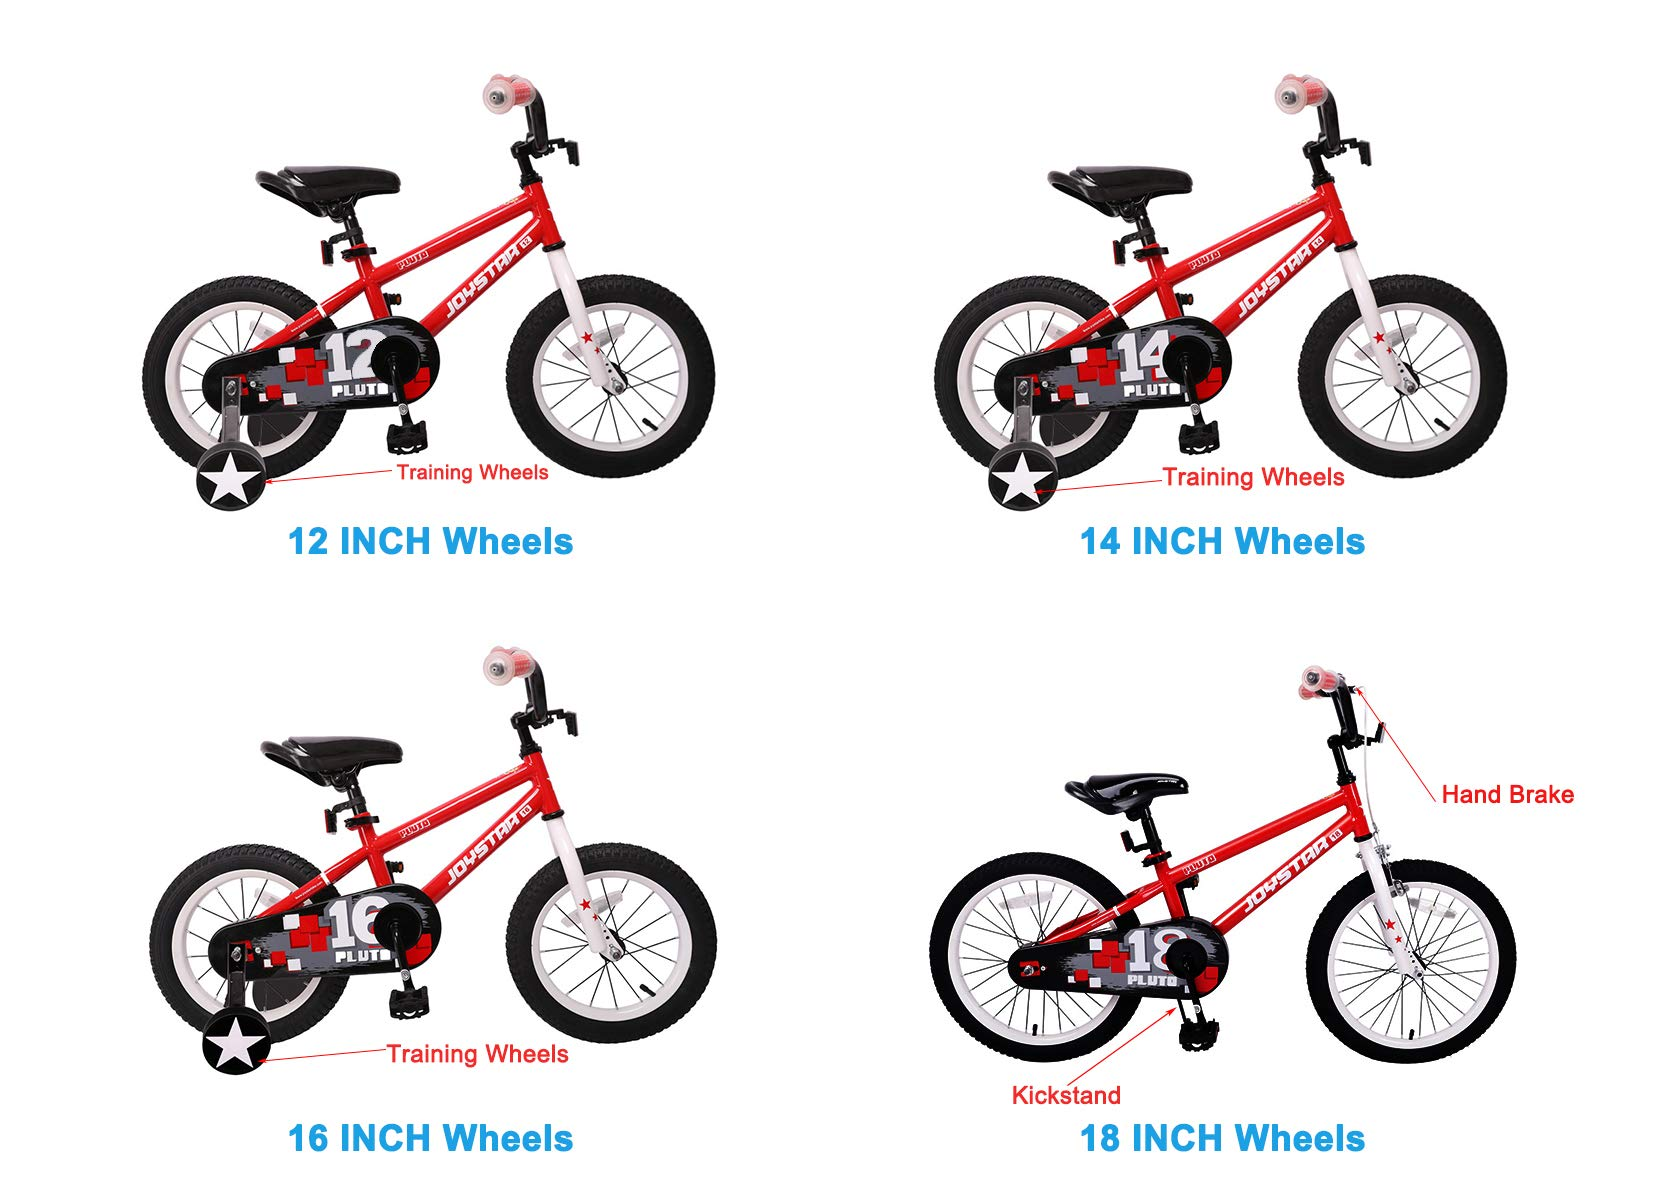 JOYSTAR 12'' Pluto Kids Bike with Training Wheels for 2 3 4 Year Old Boys & Girls, Unisex Kids Bicycle, Pedal Cycle for Toddlers, Red by JOYSTAR (Image #5)